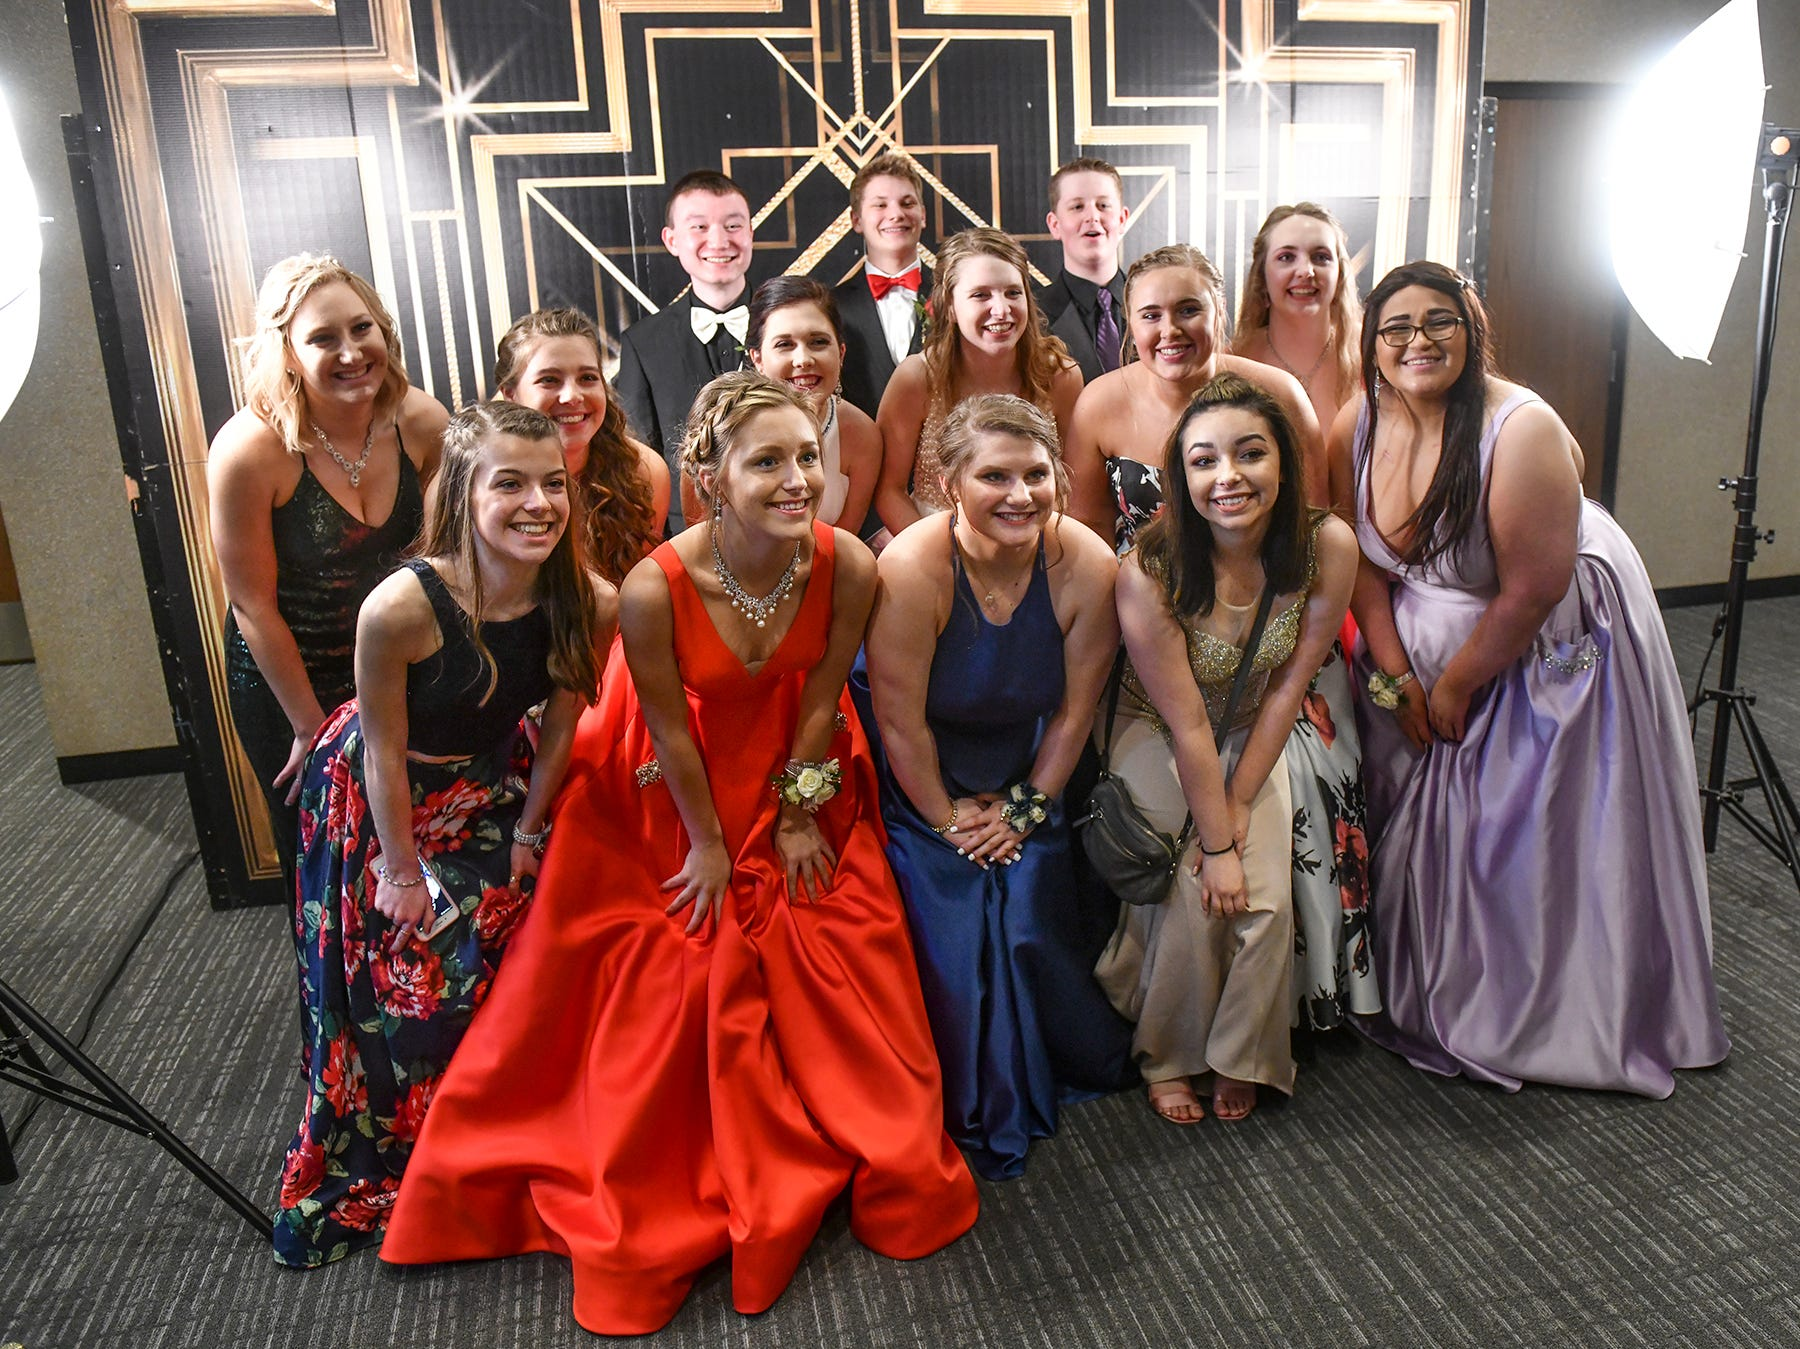 Friends pose for a group photo during prom Saturday, April 6, at Albany High School.